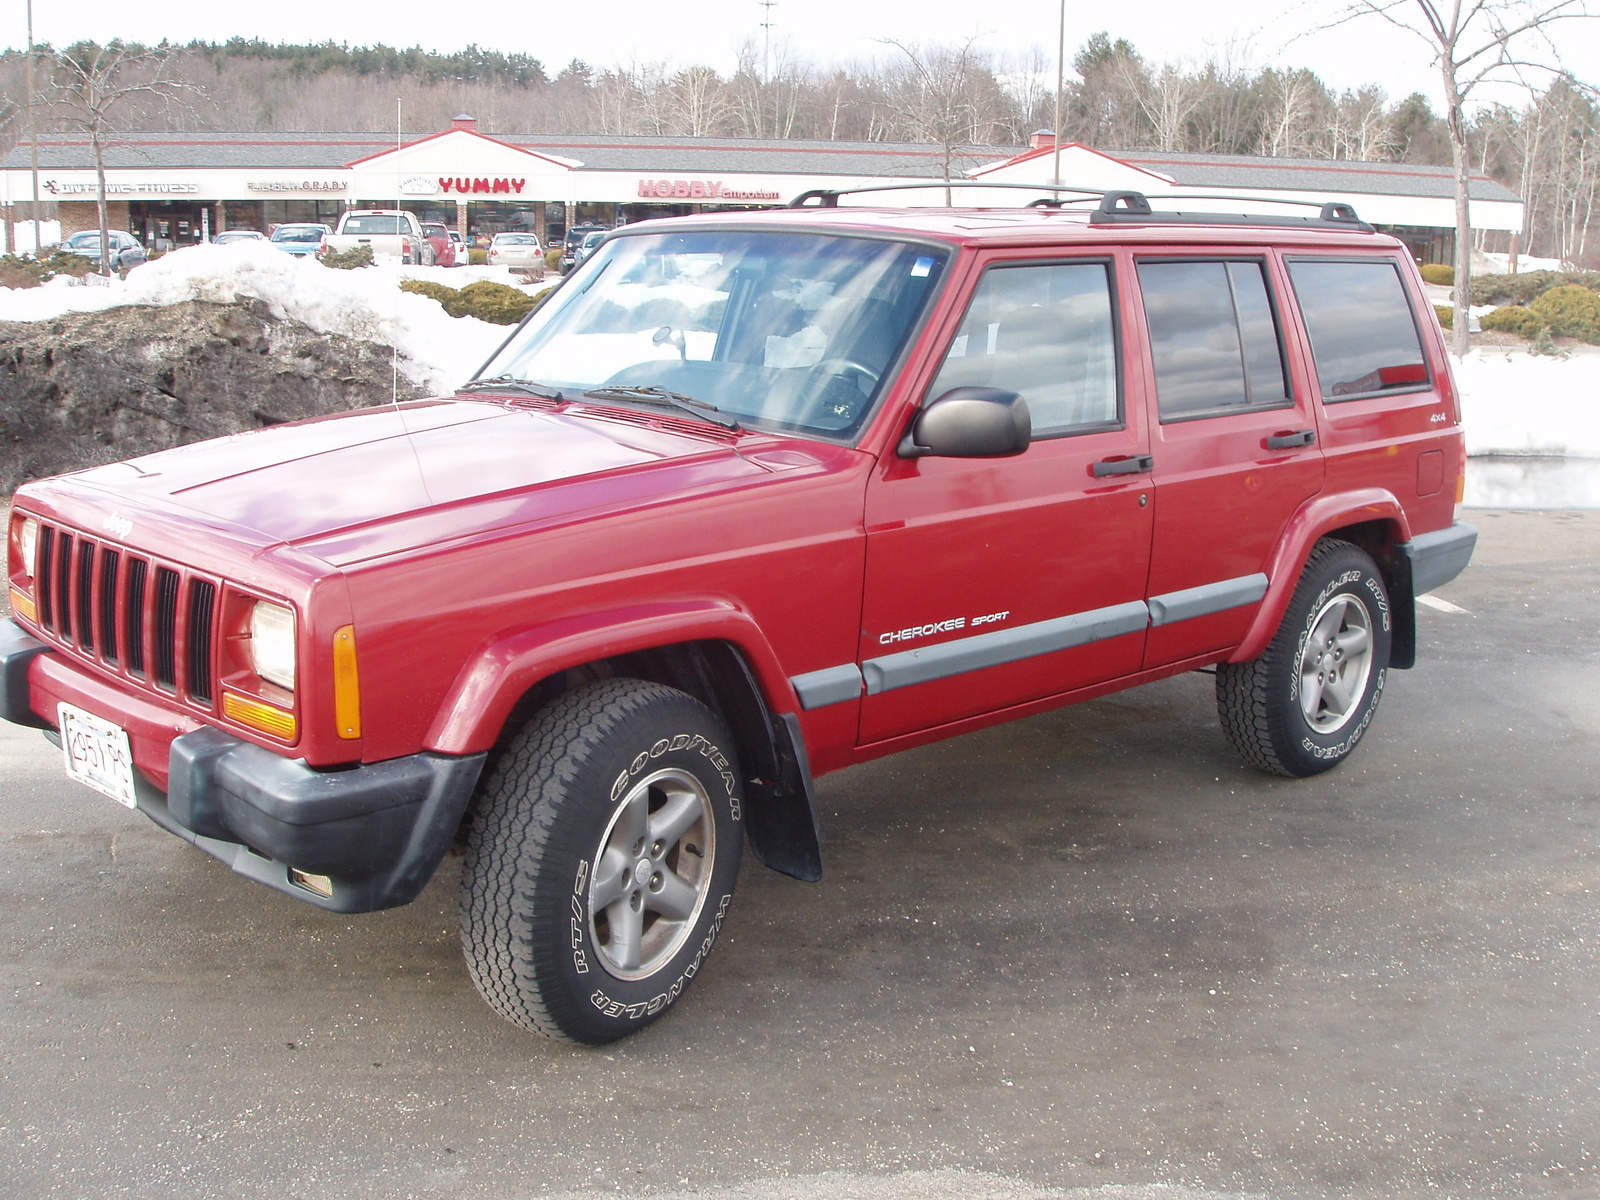 Photos Jeep Cherokee Classic Xj 1998 2001 29753 furthermore 35s 3 Inch Lift 33255 together with Interior 43371020 furthermore Dashboard 71331780 in addition Page 146. on 2000 jeep cherokee sport classic